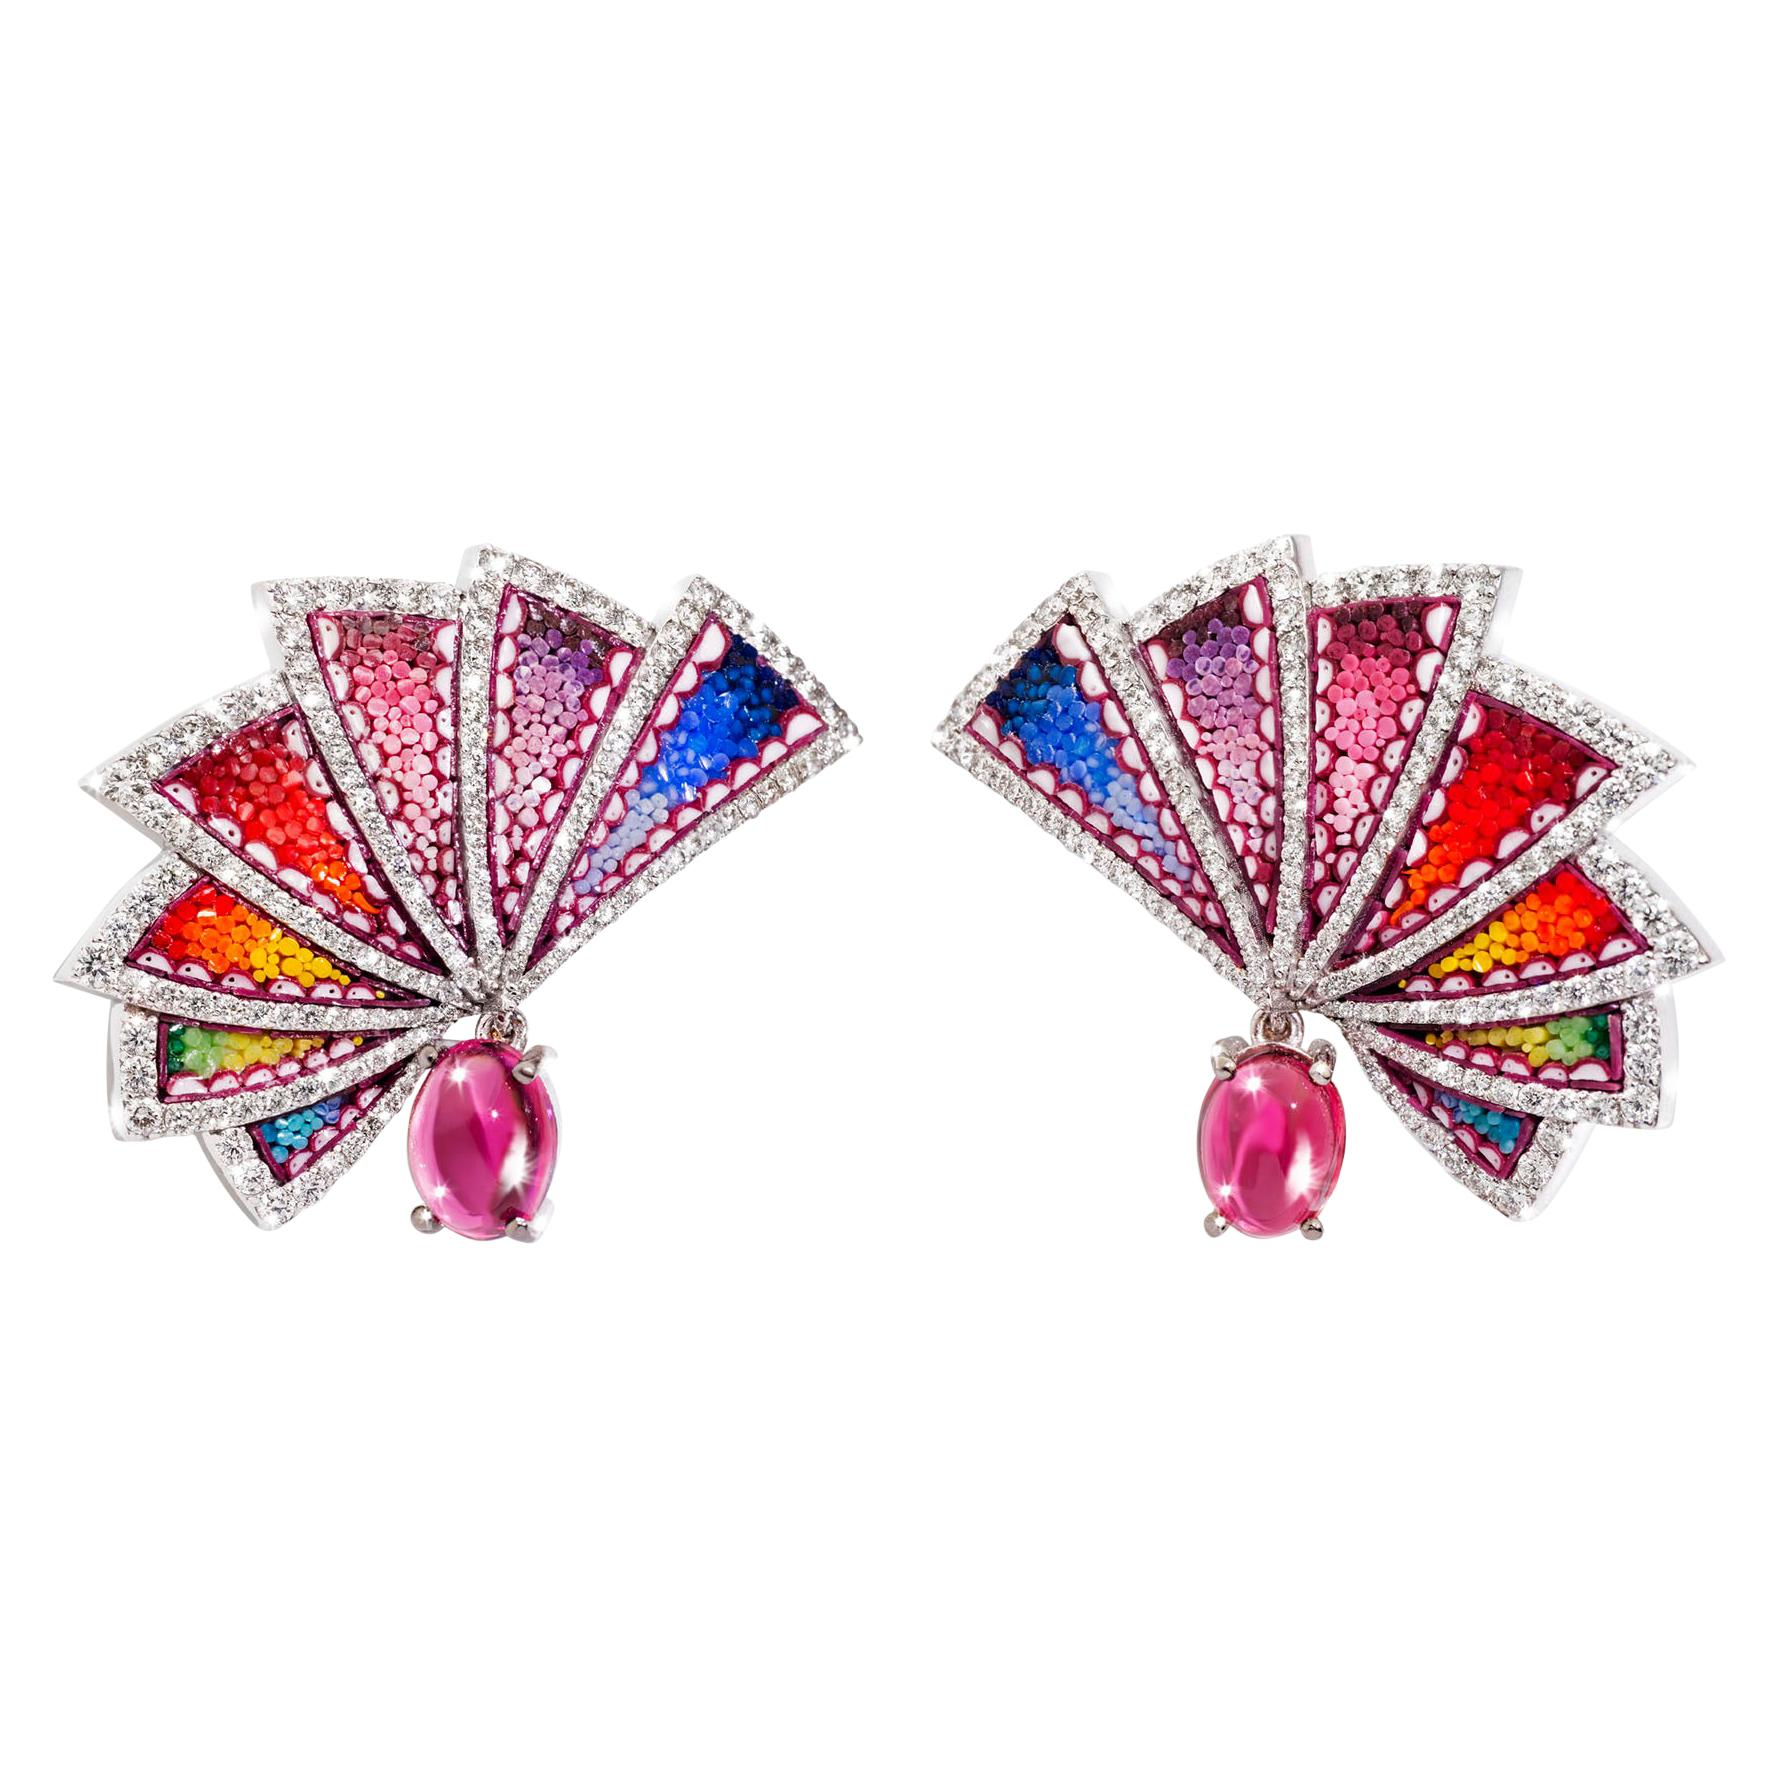 Earrings White Gold White Diamonds Rubelite HandDecorated with Micromosaic